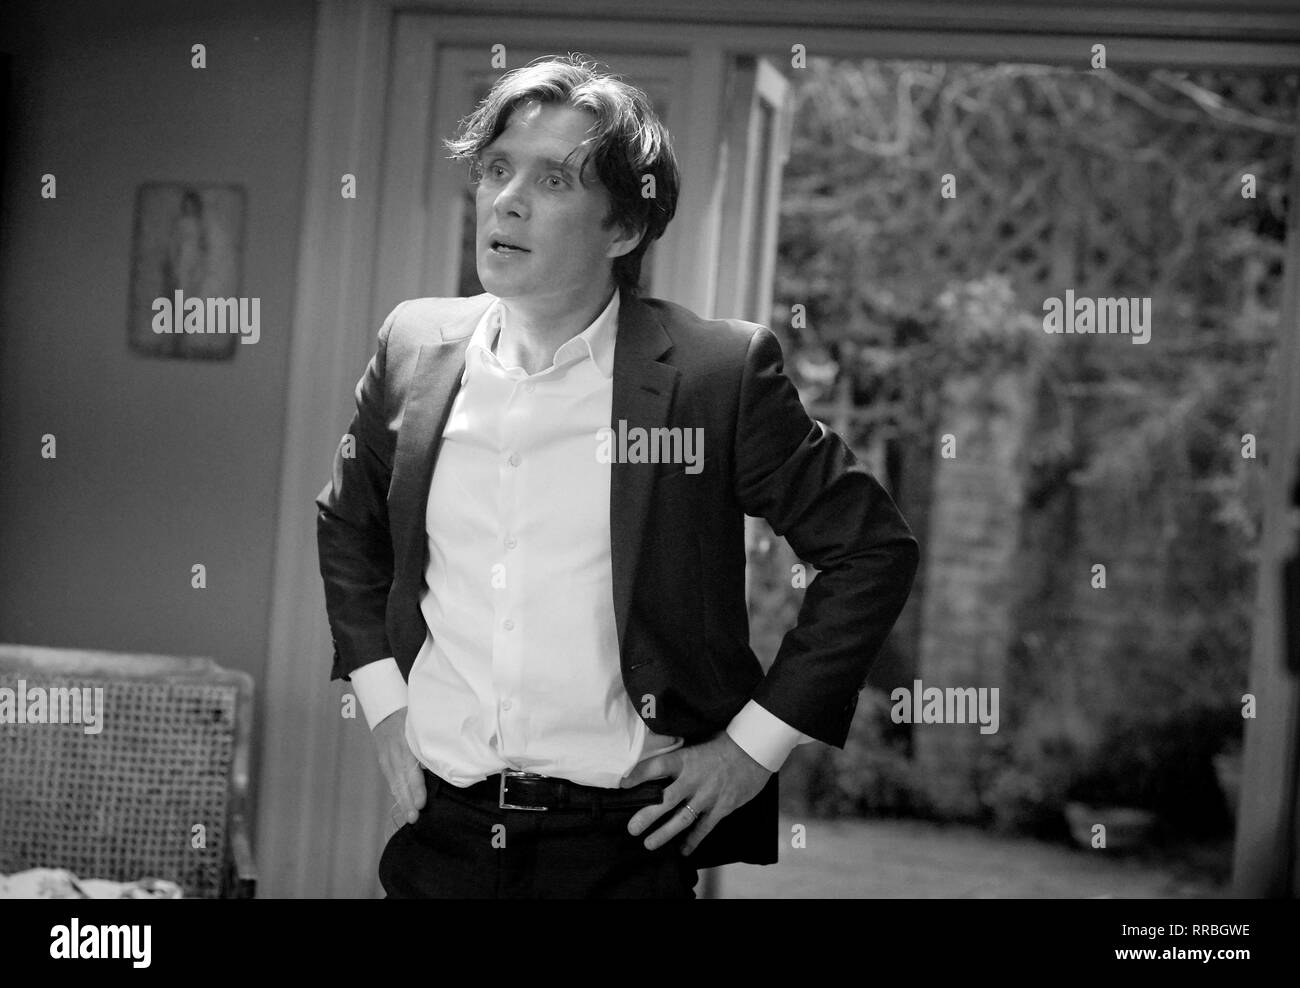 THE PARTY, CILLIAN MURPHY, 2017 - Stock Image